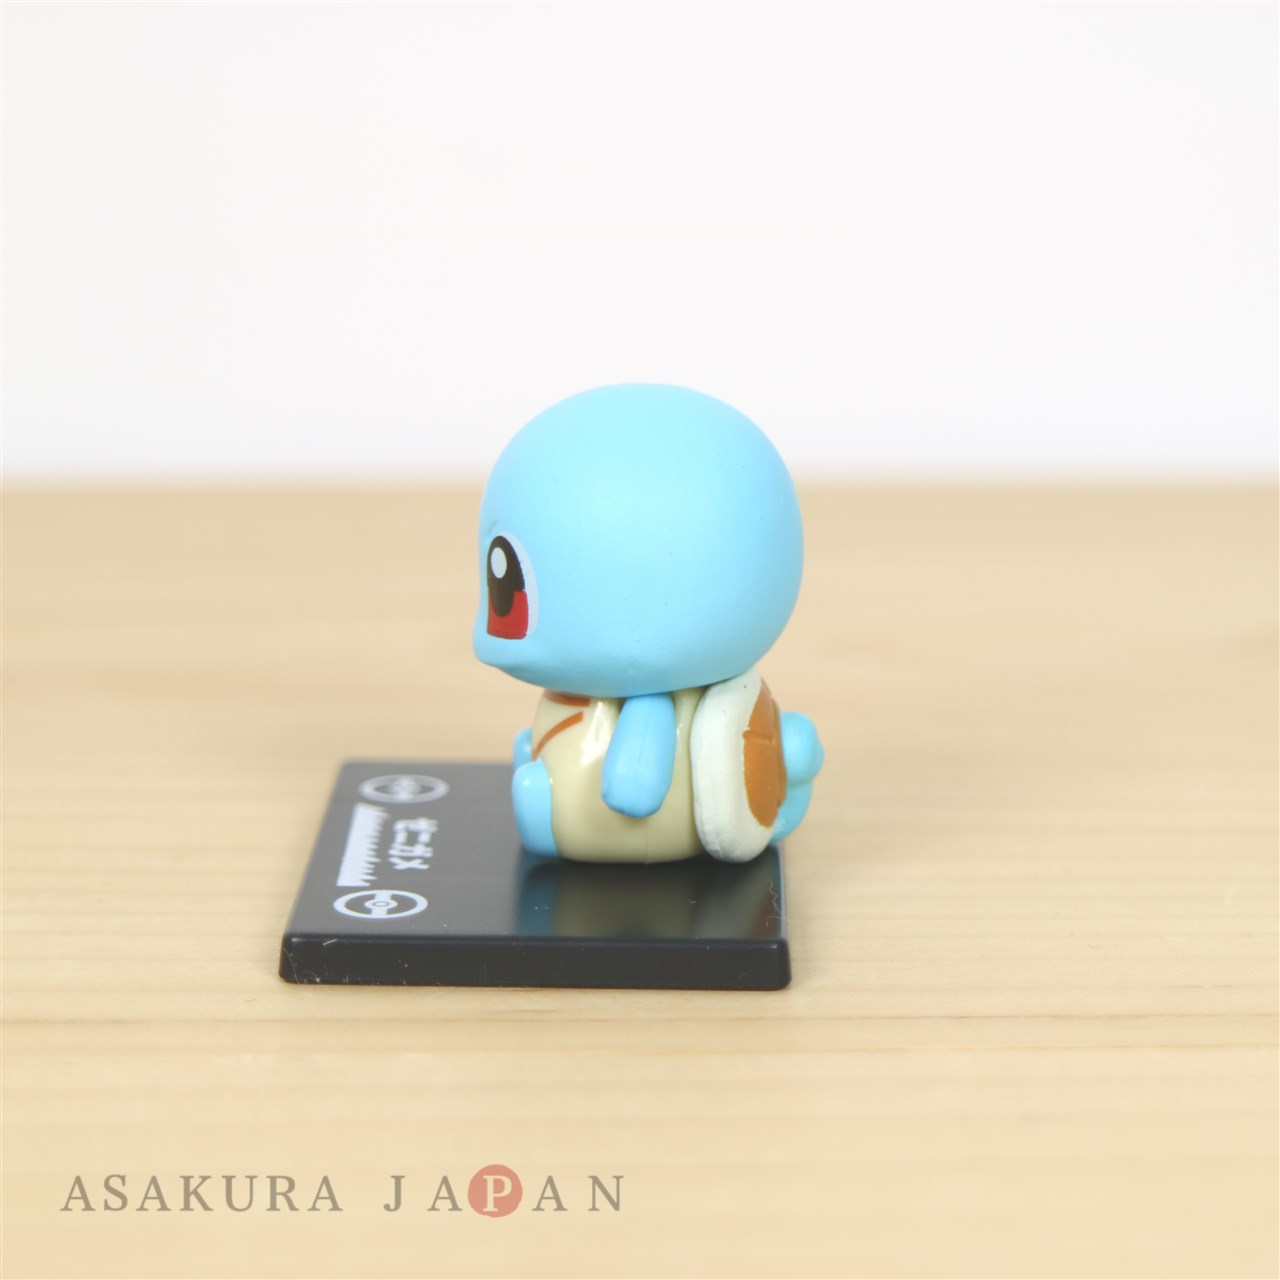 Pokemon BANDAI Colle chara vol.1 #2 Squirtle Mini Figure with name pedestal